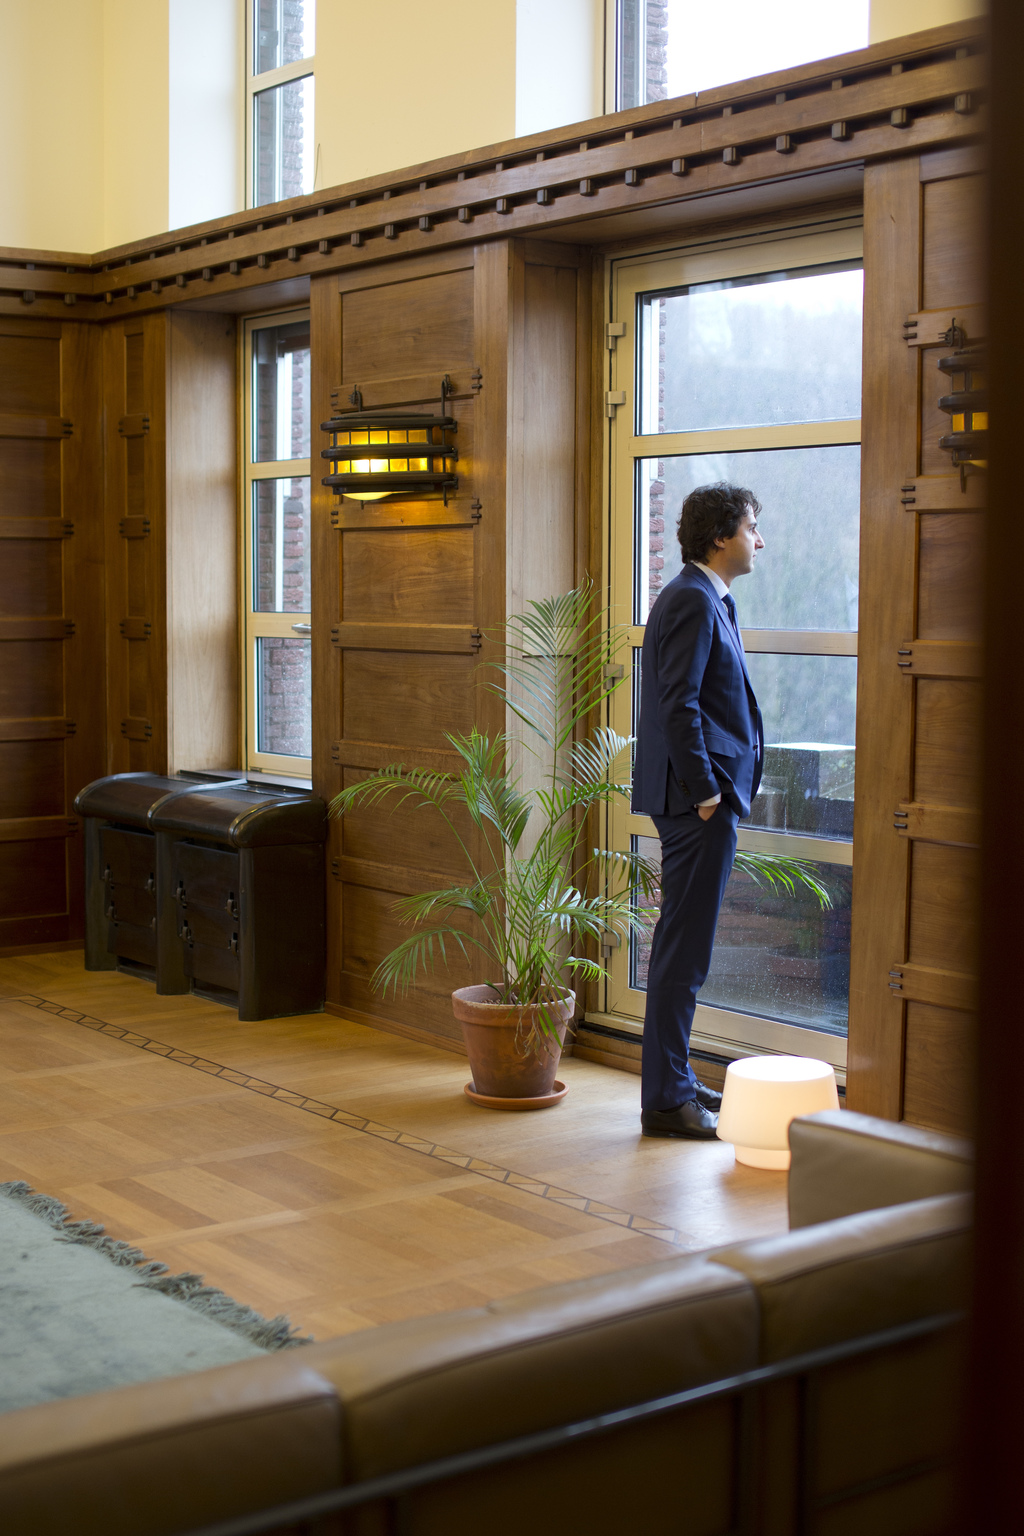 Green Left party leader Jesse Klaver looks out of the window prior to an interview in The Hague, Netherlands, Wednesday, March 8, 2017....